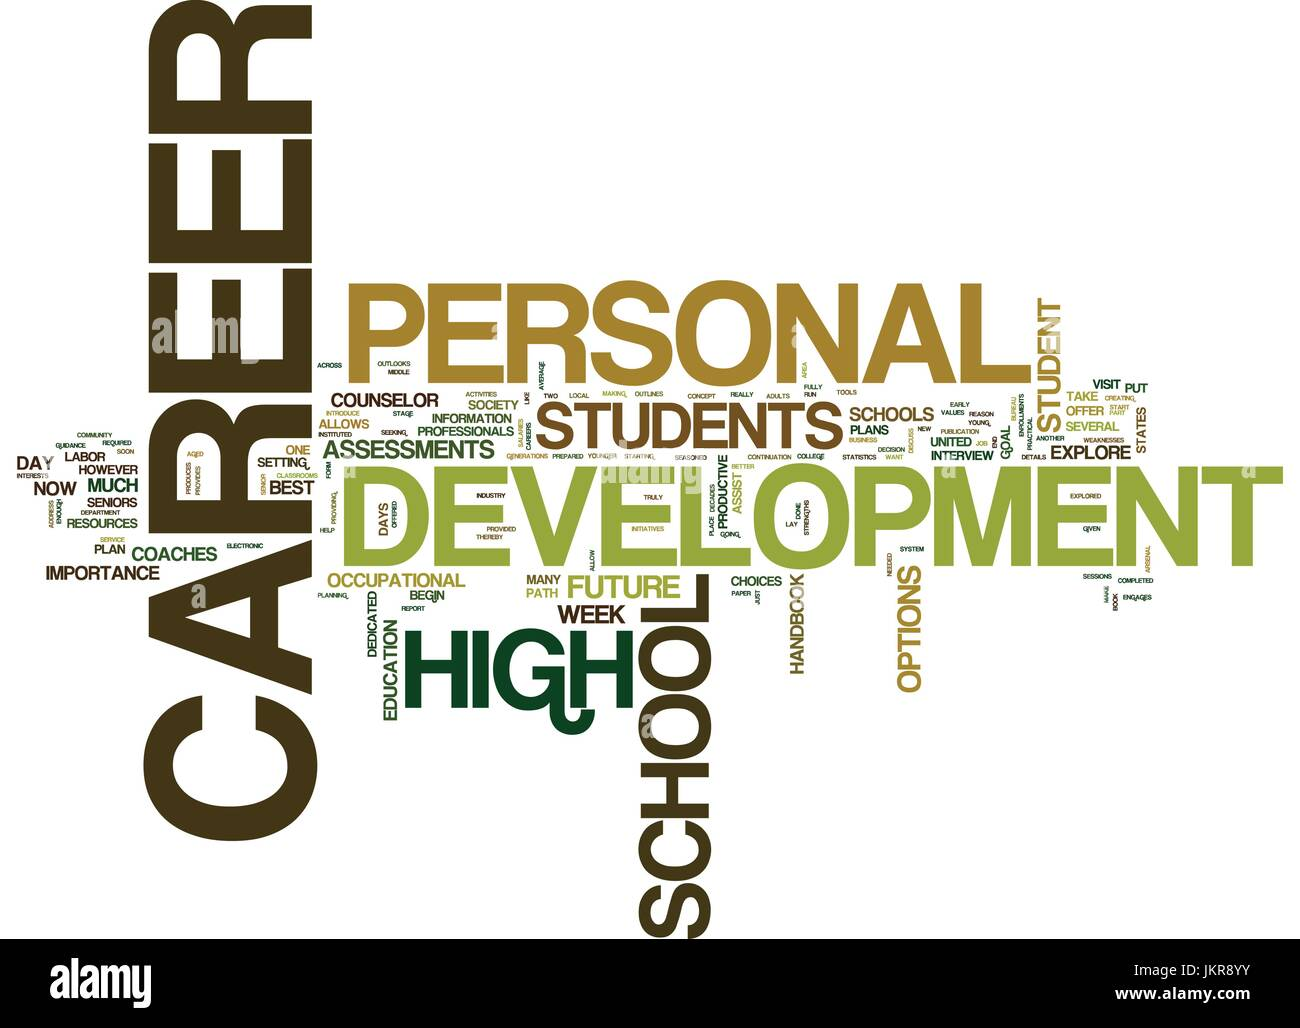 what is the importance of career development